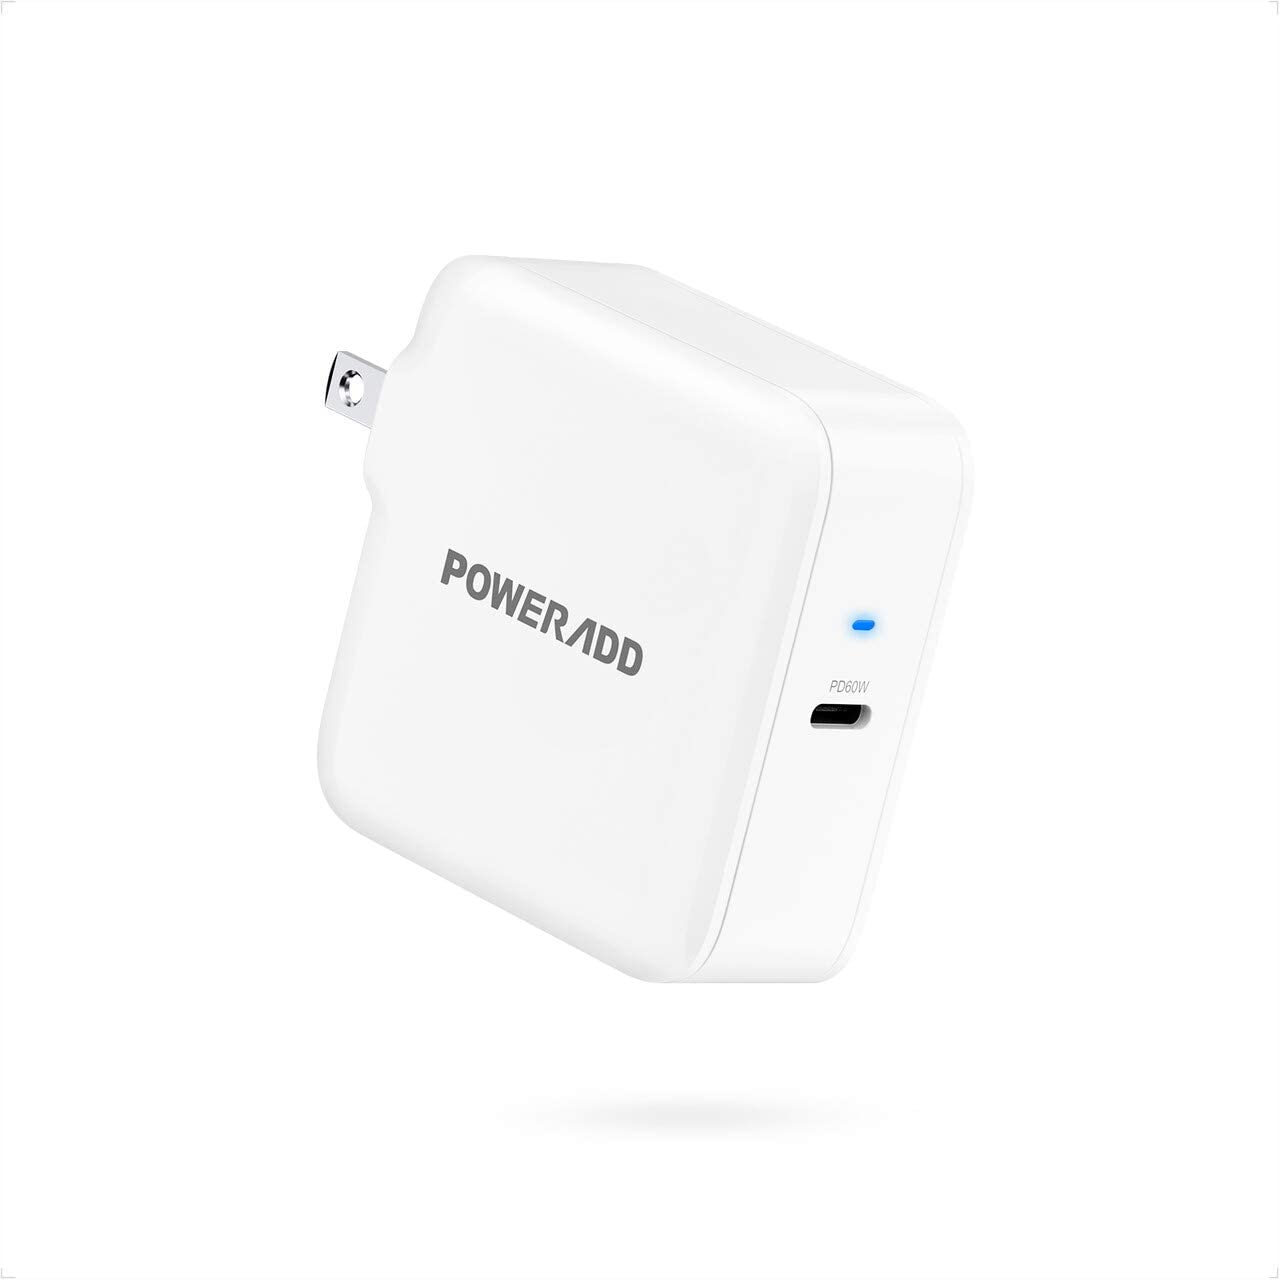 USB C Charger, POWERADD 60W Type-C Power Adapter, Fast Power Delivery Foldable PD Wall Charger, Compatible for MacBook Pro/Air, HP Spectre, Dell XPS, Matebook, iPad Pro, iPhone 12, Galaxy and More